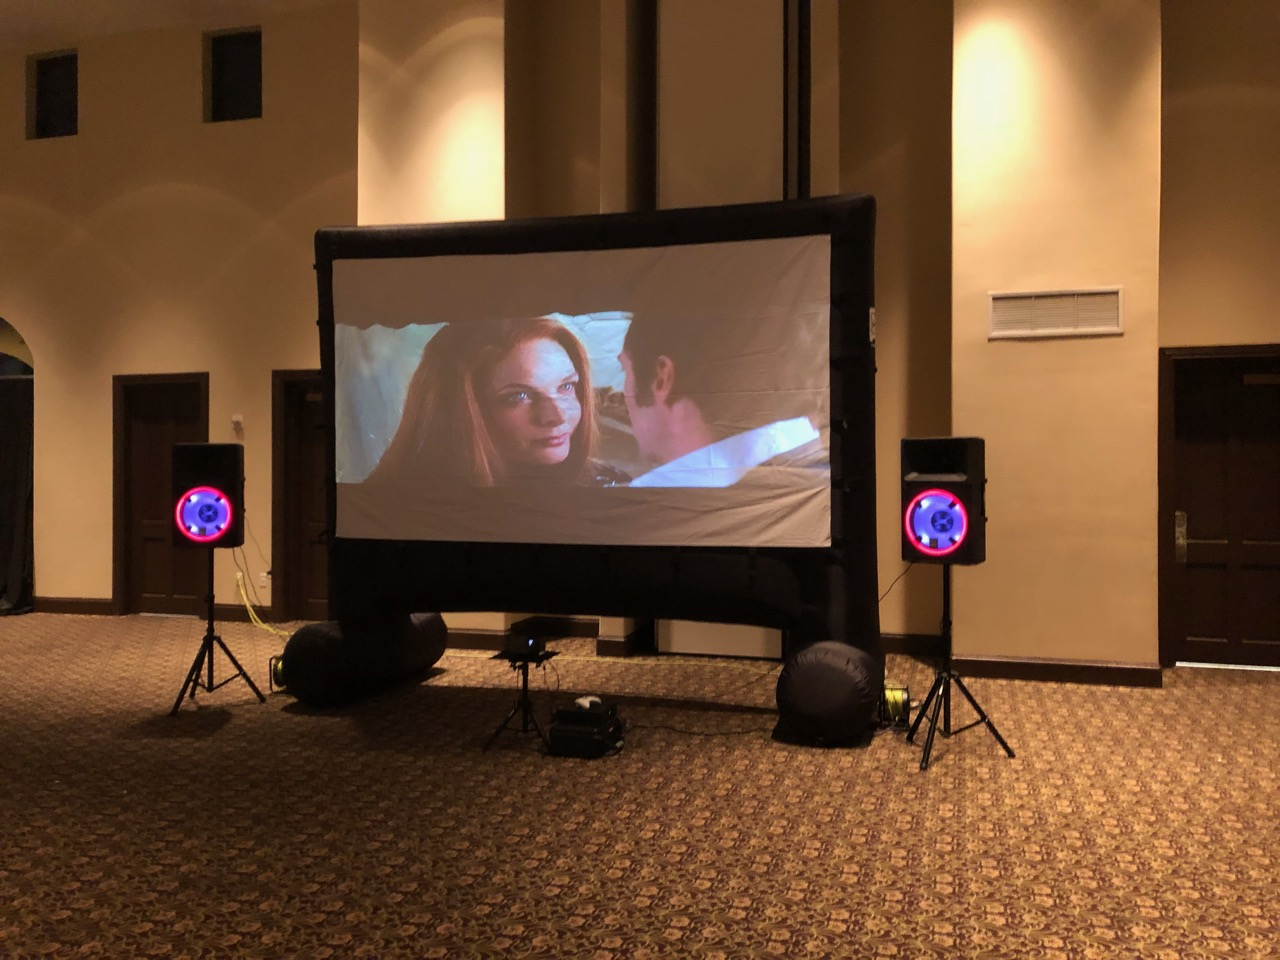 16 Foot Projector Rental Florida - Birth